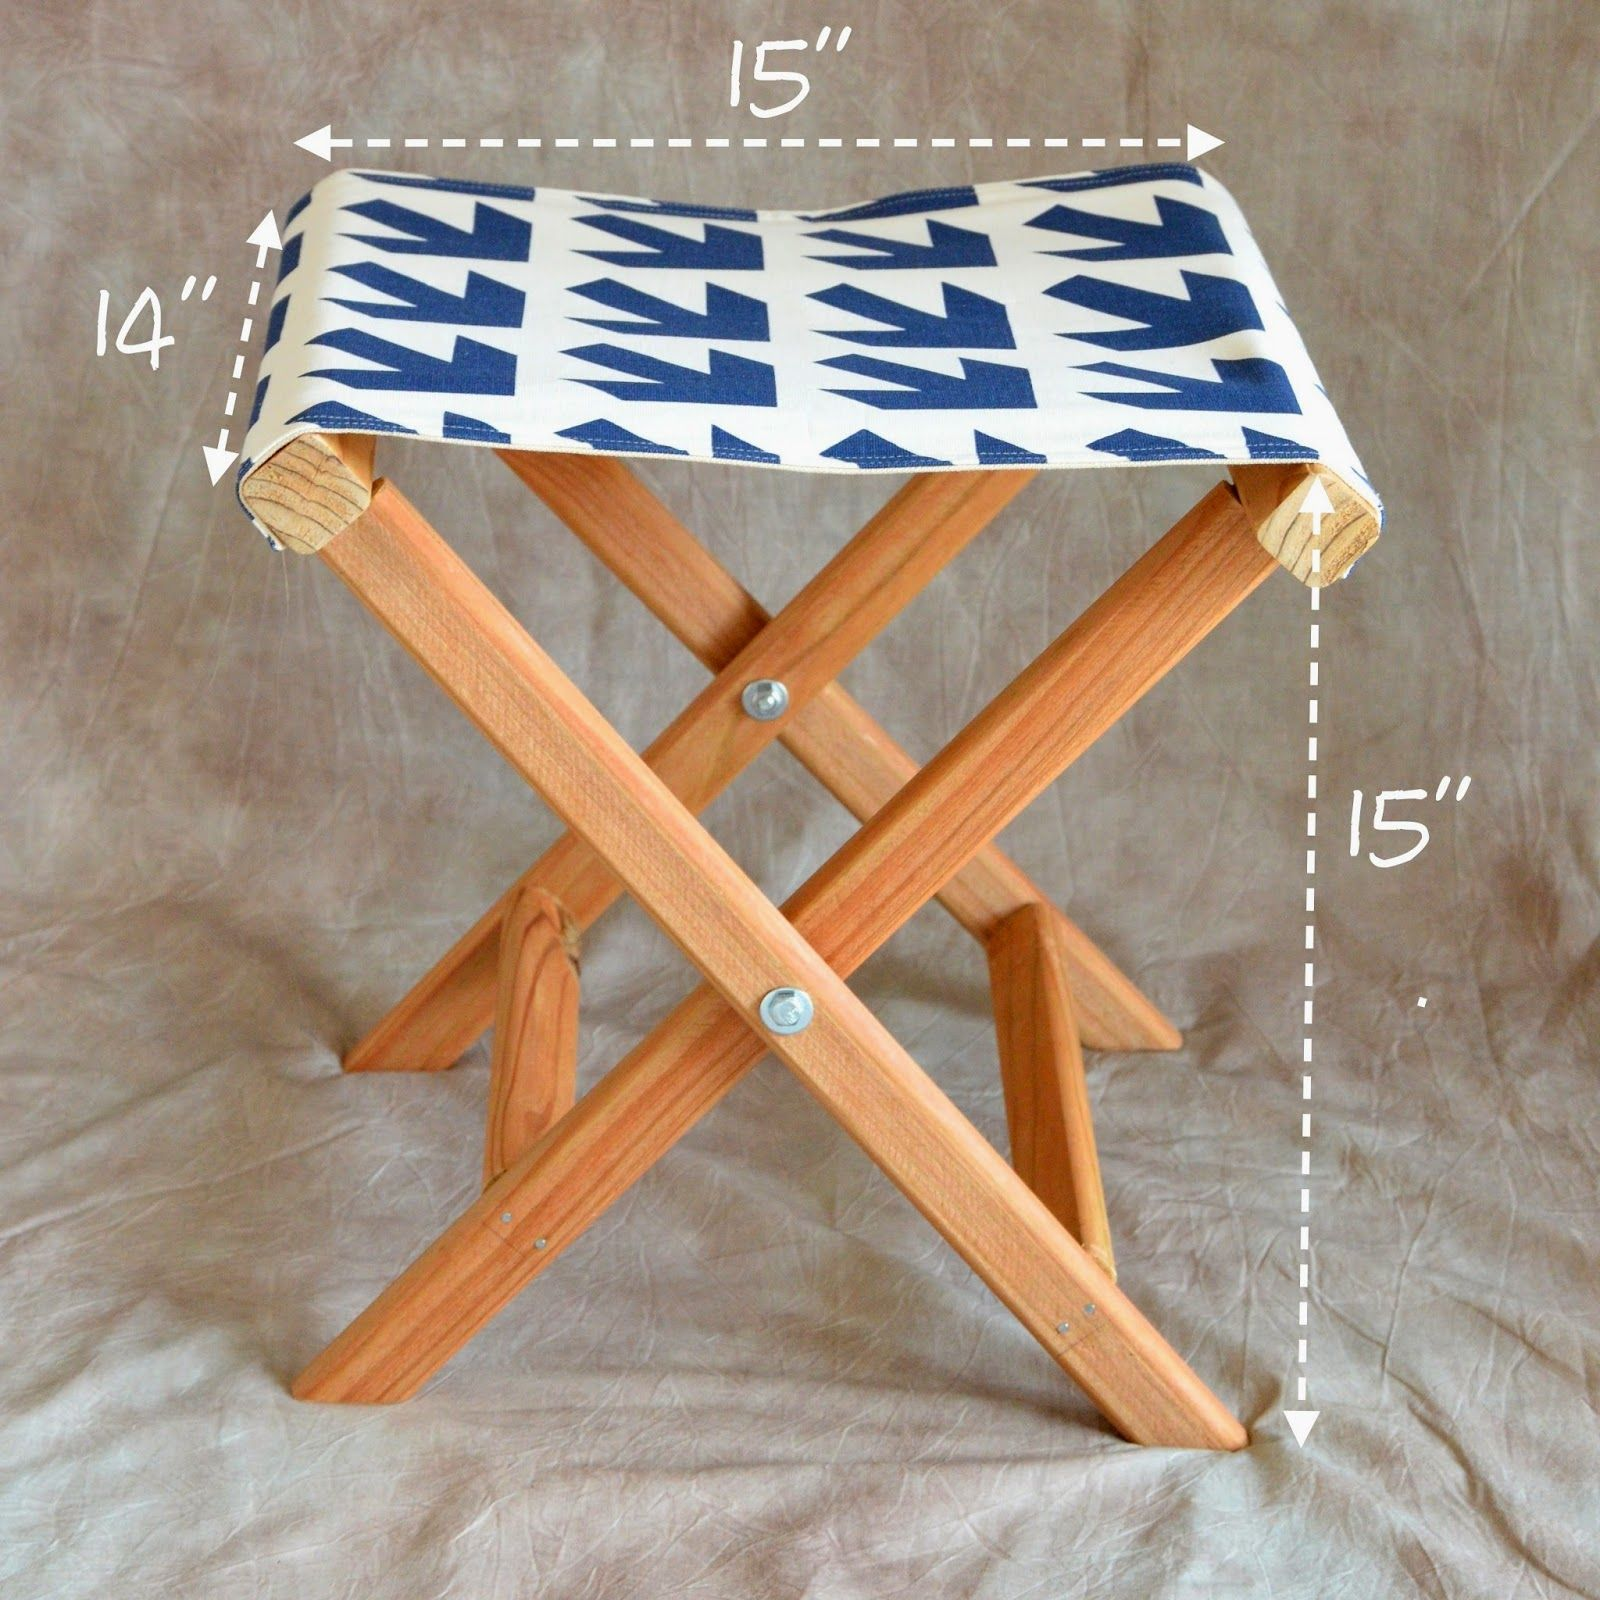 Ikat Bag Tutorial For Footstool Or Camp Stool Size Up